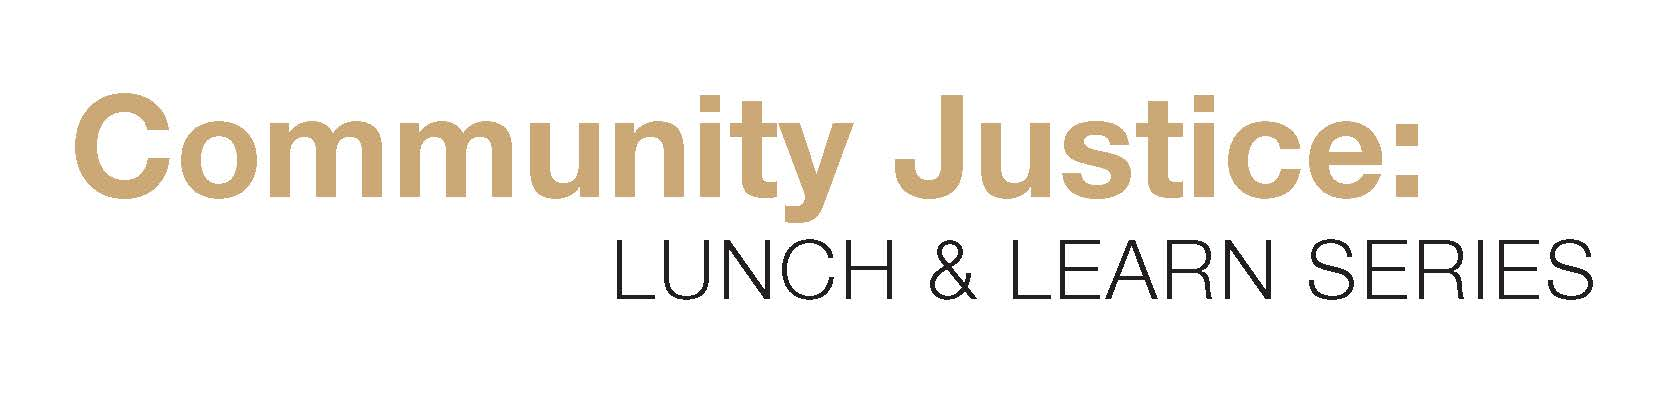 Community Justice: Lunch & Learn Series logo